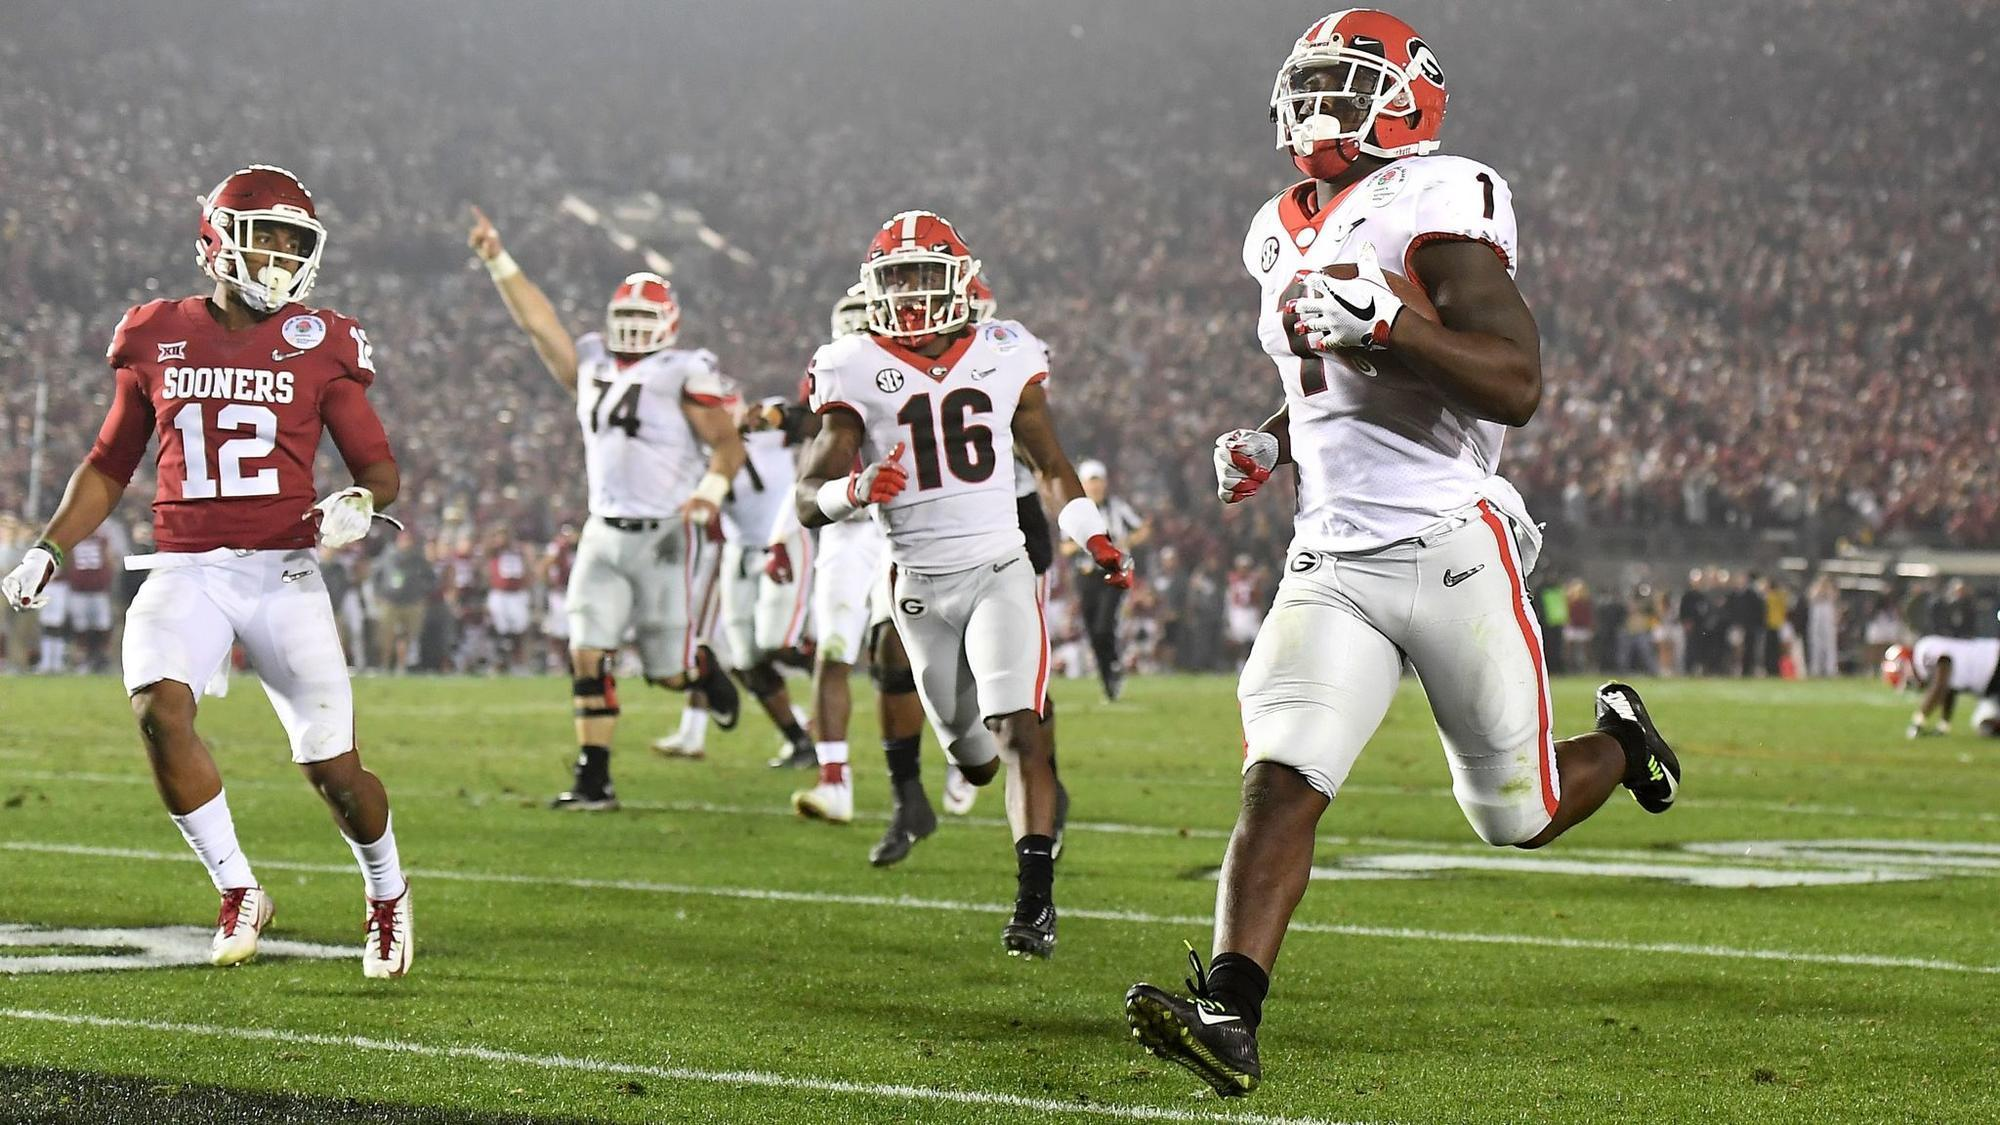 Georgia claims a 54-48 double-overtime victory over ...